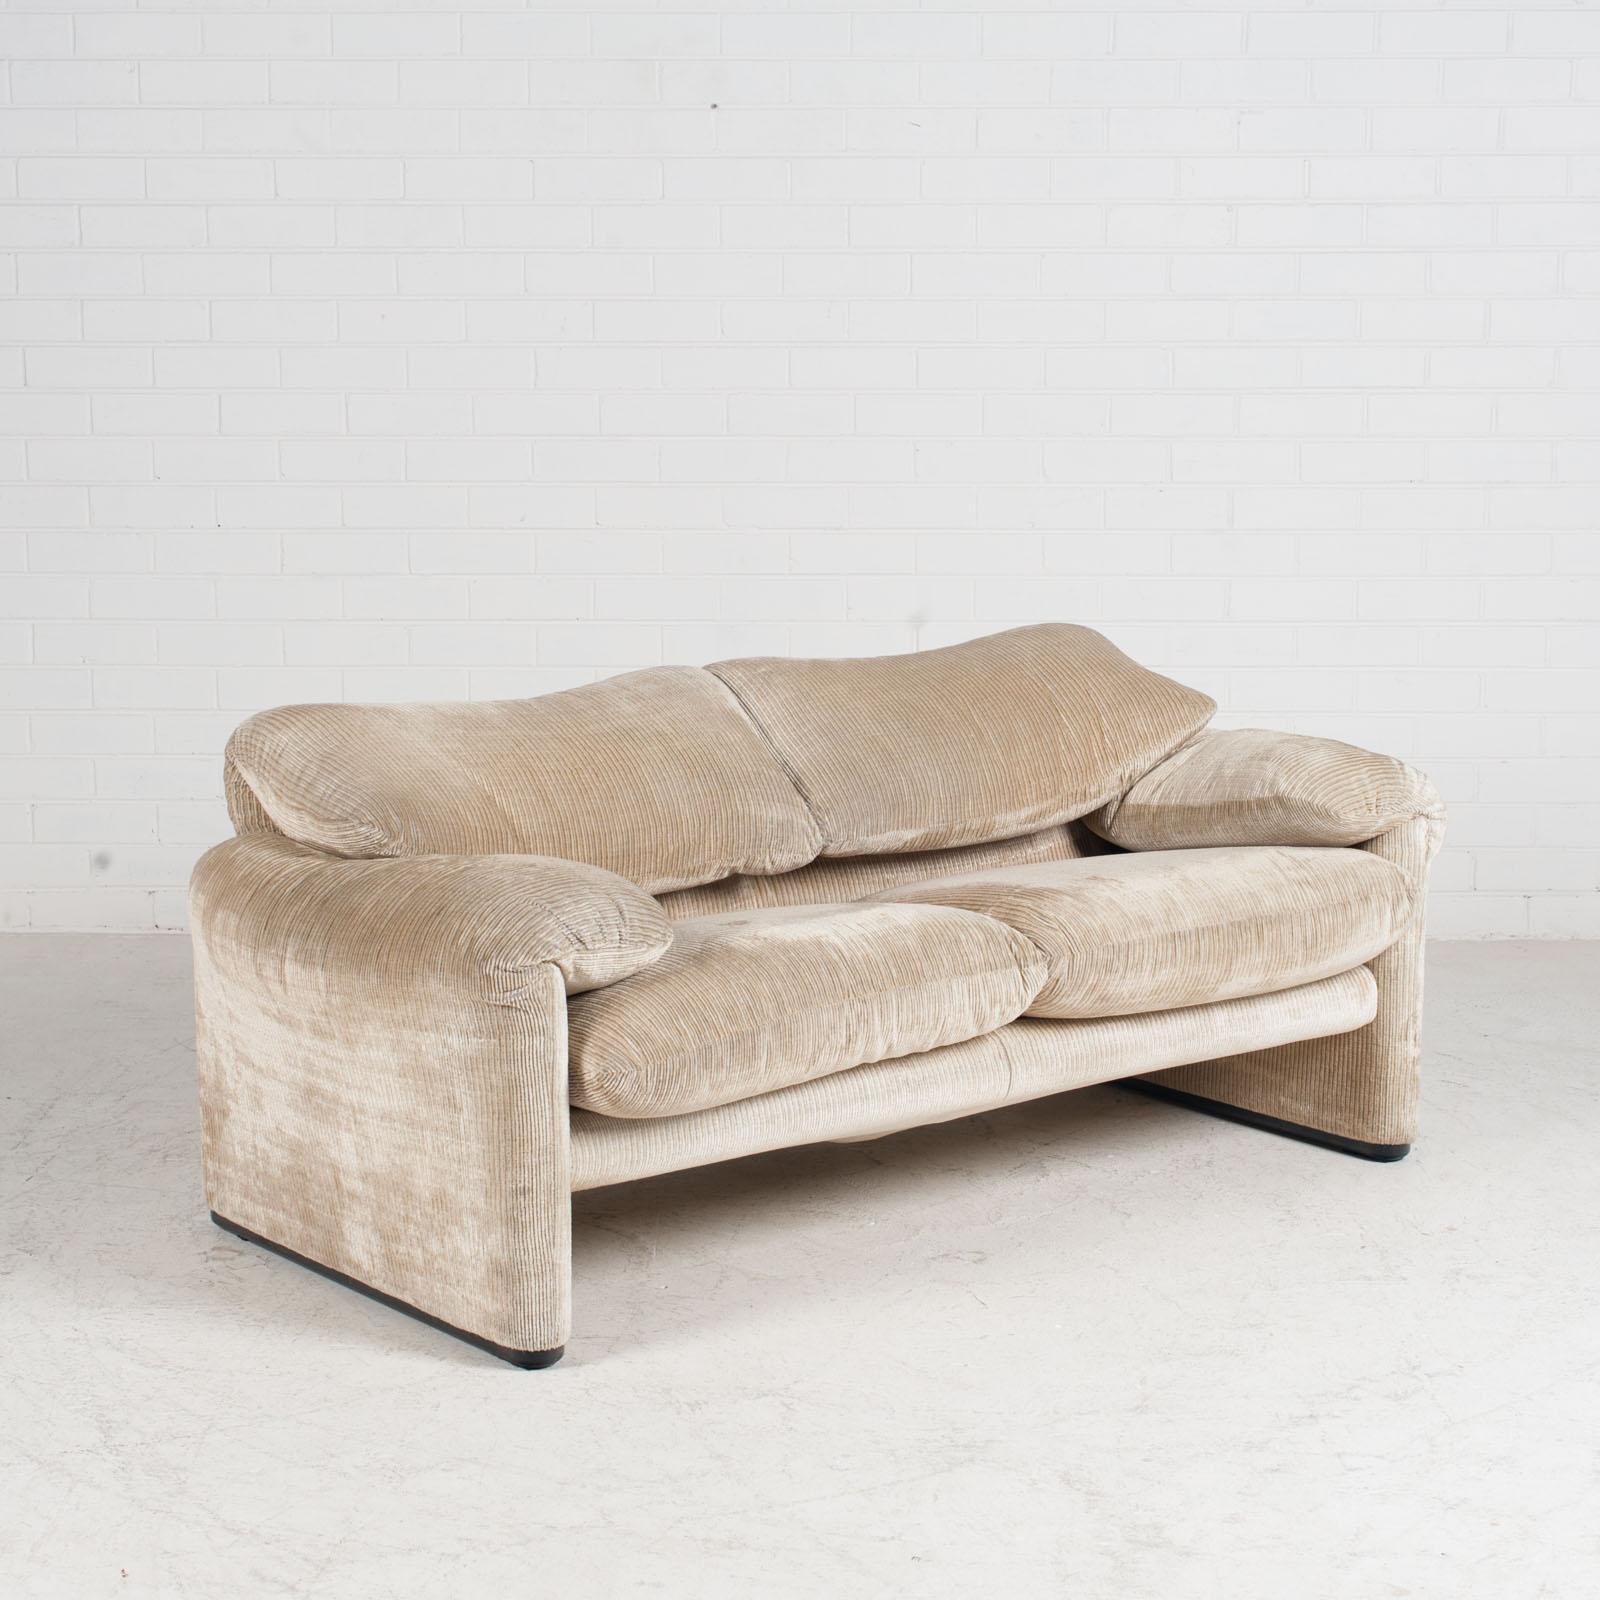 Maralunga 2 Seat Sofa By Vico Magistretti For Cassina In Original Upholstery 1970s Italy 02